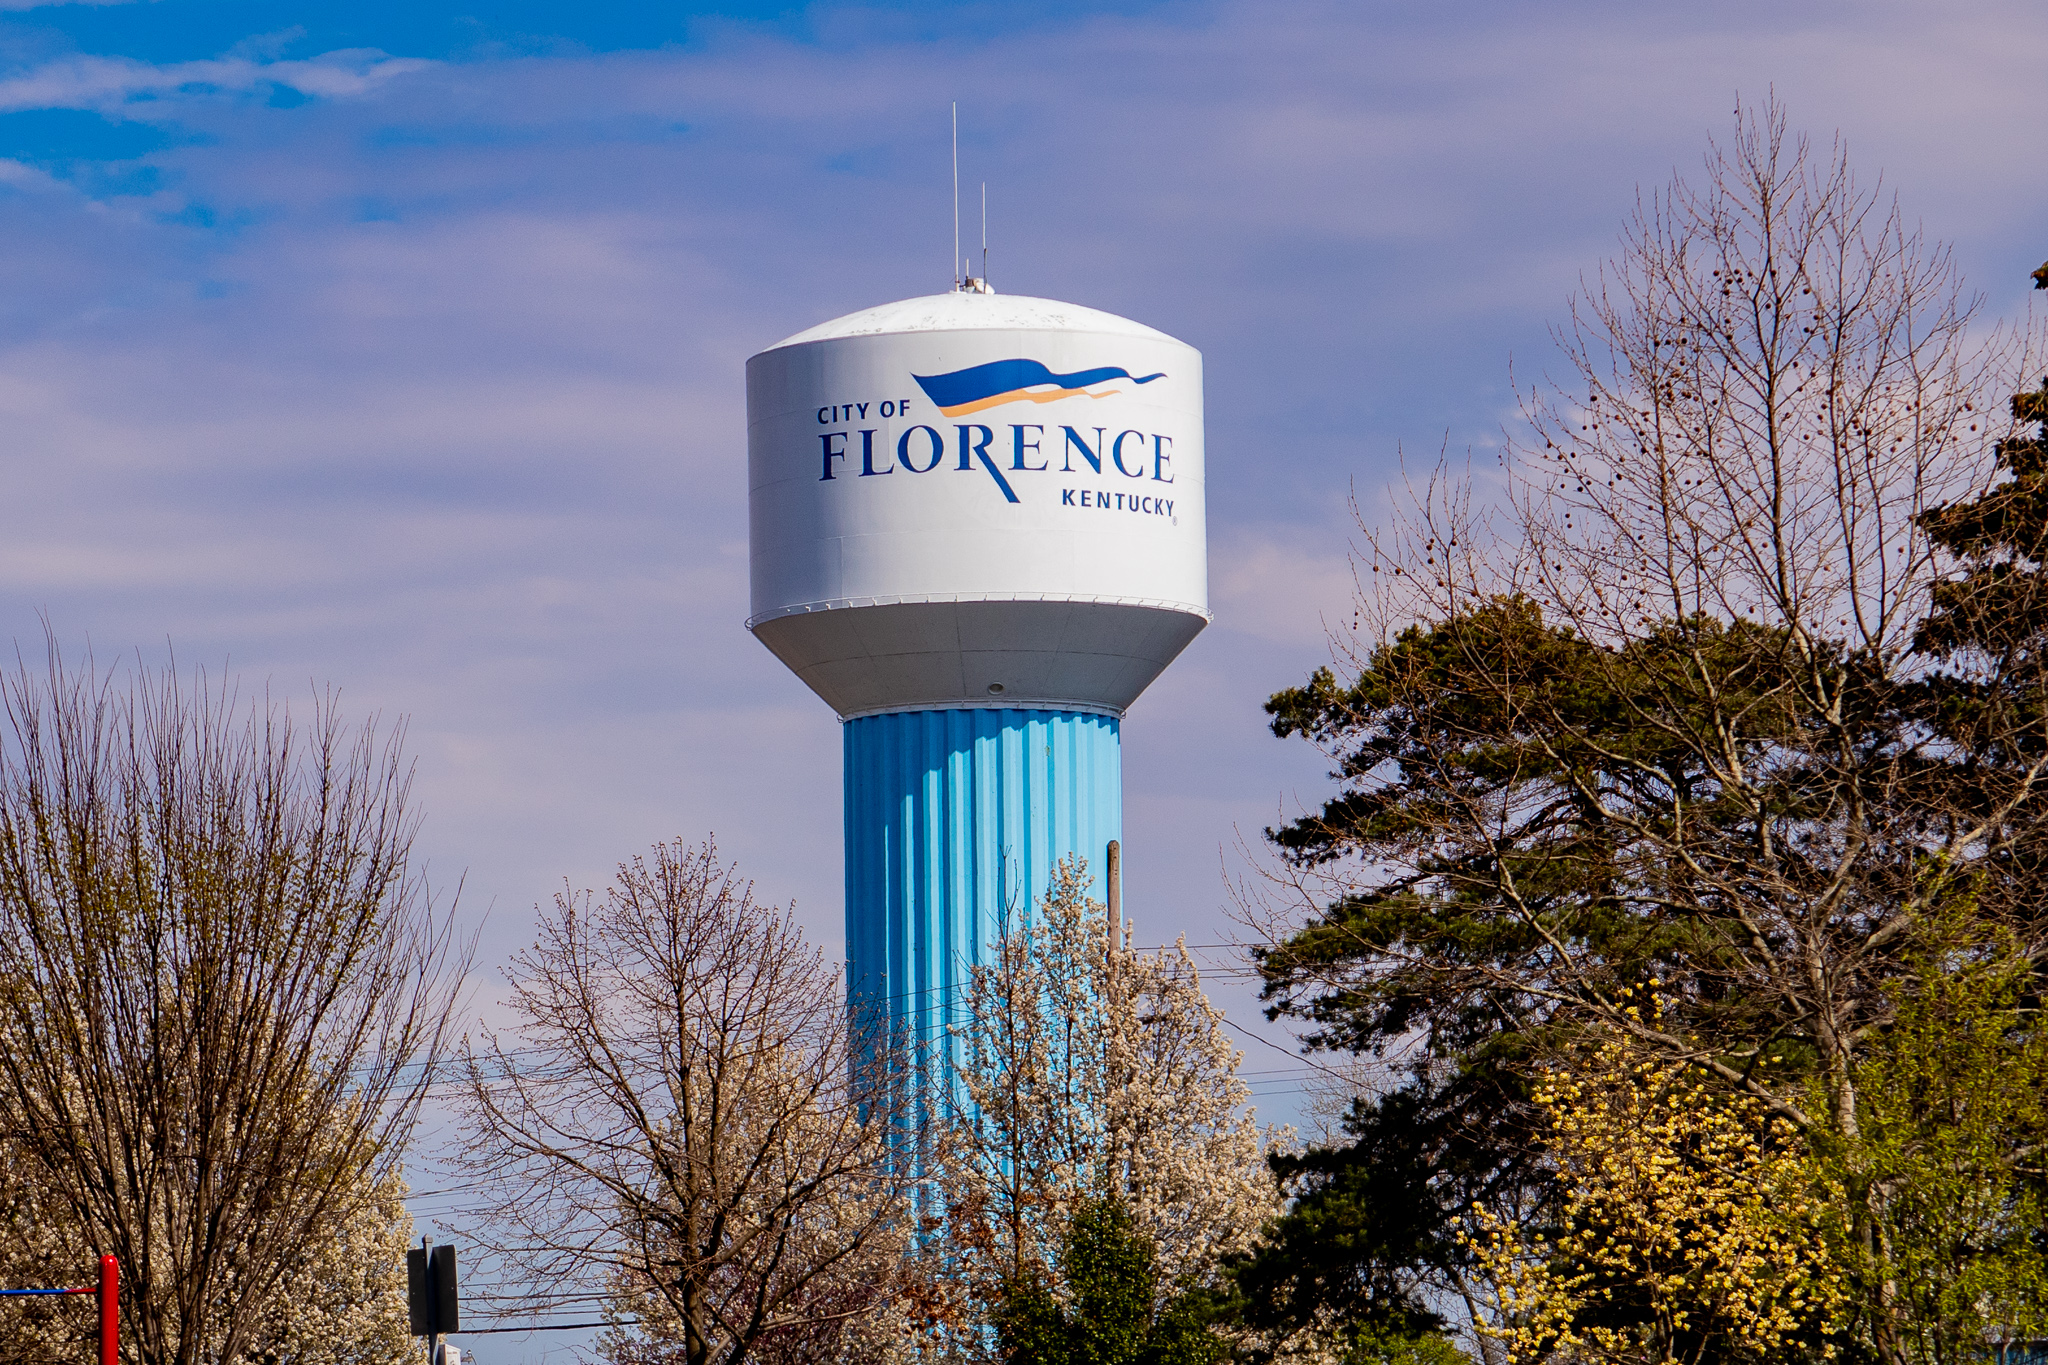 City of Florence Kentucky water tower